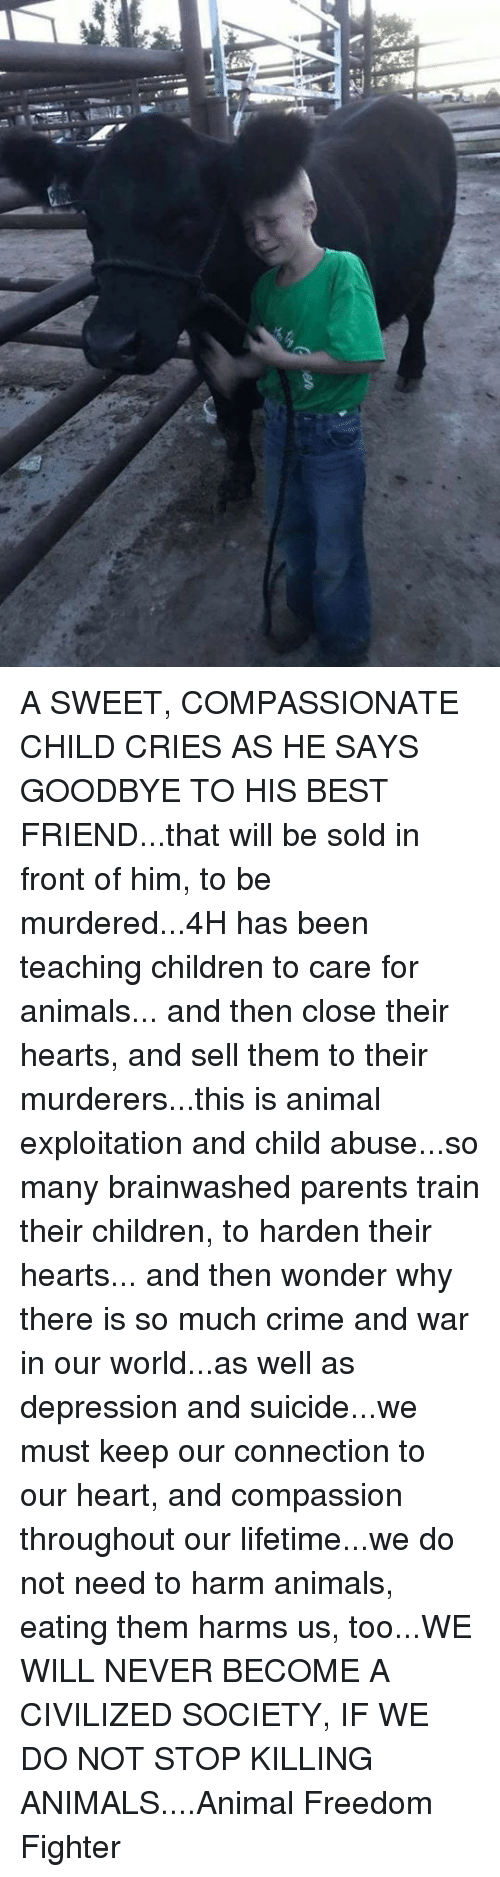 Animals, Best Friend, and Children: A SWEET, COMPASSIONATE CHILD CRIES AS HE SAYS GOODBYE TO HIS BEST FRIEND...that will be sold in front of him, to be murdered...4H has been teaching children to care for animals... and then close their hearts, and sell them to their murderers...this is animal exploitation and child abuse...so many brainwashed parents train their children, to harden their hearts... and then wonder why there is so much crime and war in our world...as well as depression and suicide...we must keep our connection to our heart, and compassion throughout our lifetime...we do not need to harm animals, eating them harms us, too...WE WILL NEVER BECOME A CIVILIZED SOCIETY, IF WE DO NOT STOP KILLING ANIMALS....Animal Freedom Fighter